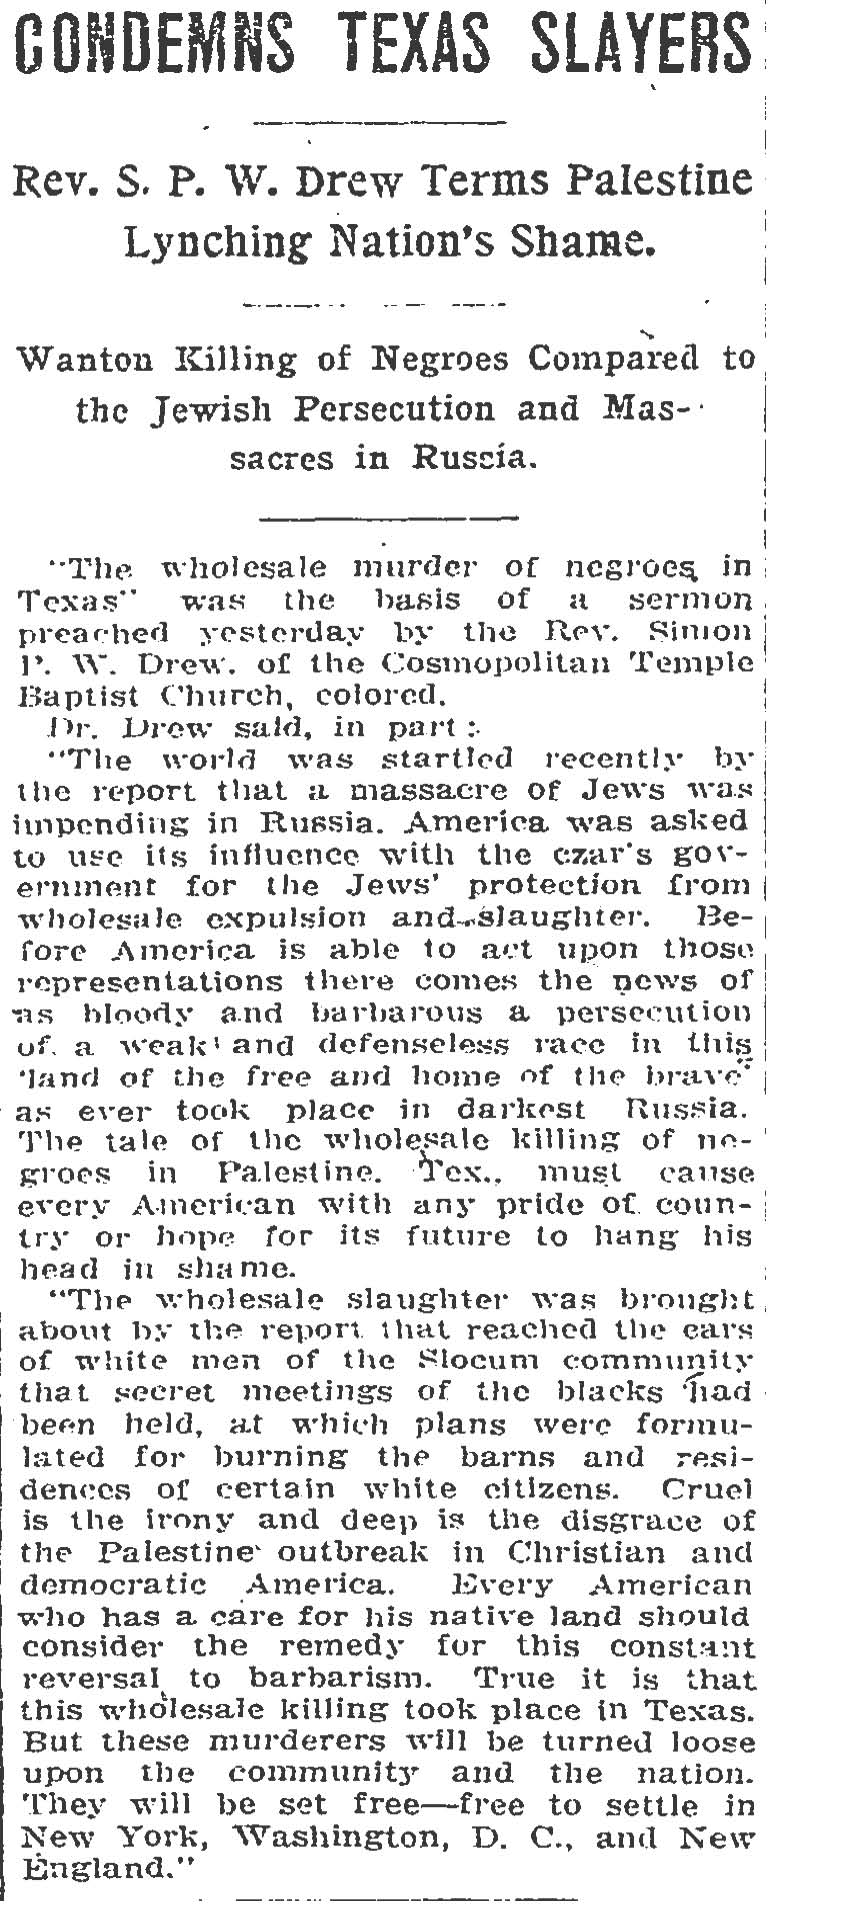 """Condemns Texas Slayers"" August 8,1910 (Page 12) (The Washington Post)"